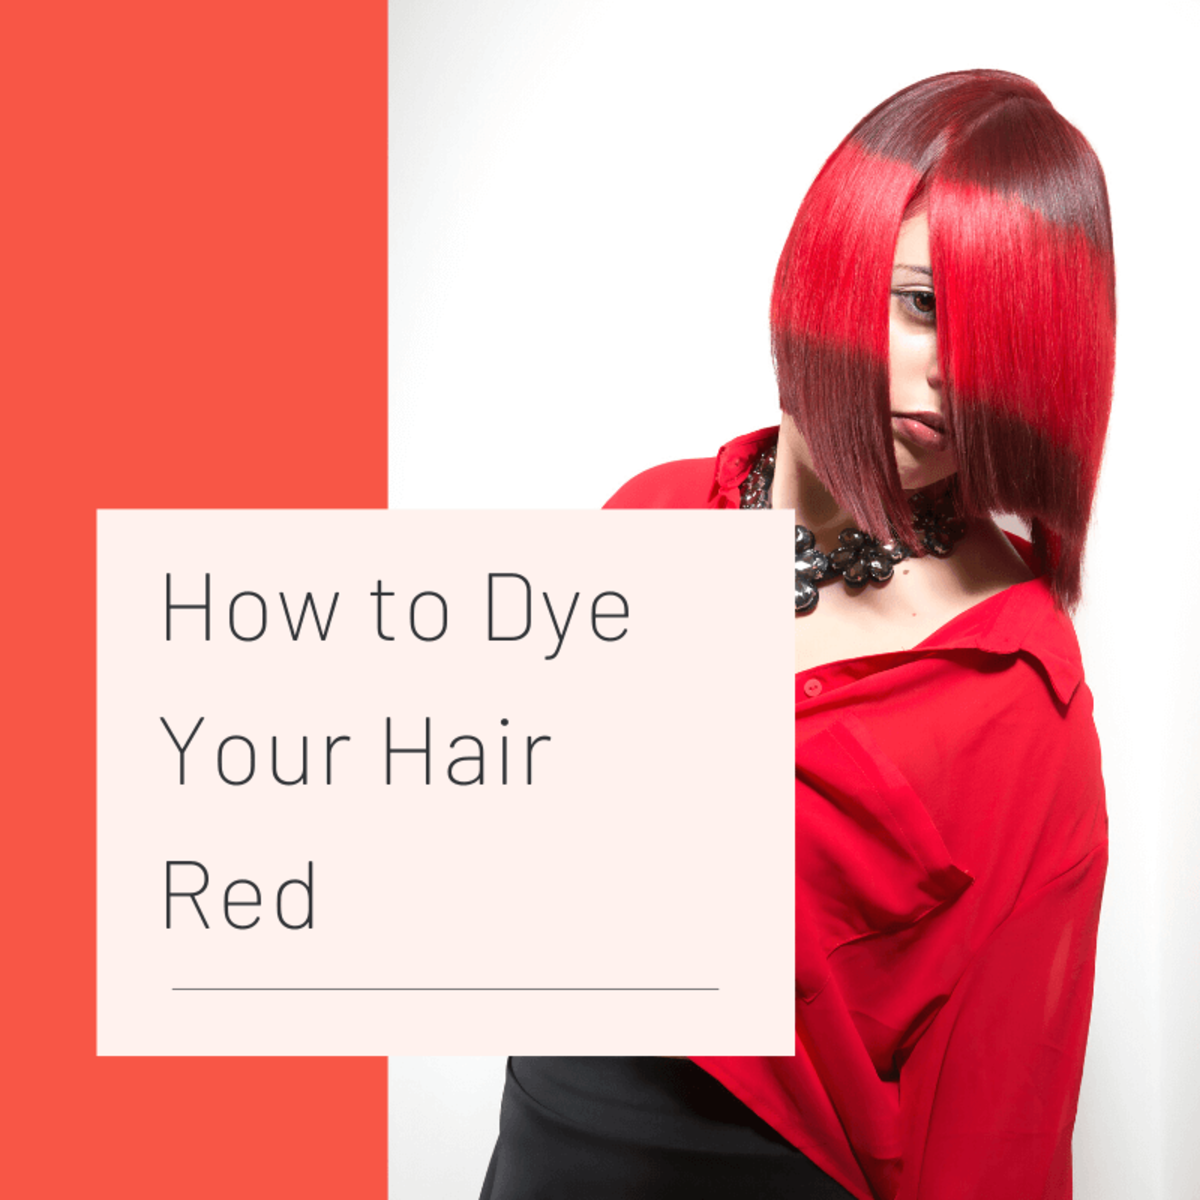 How to Dye Hair Red